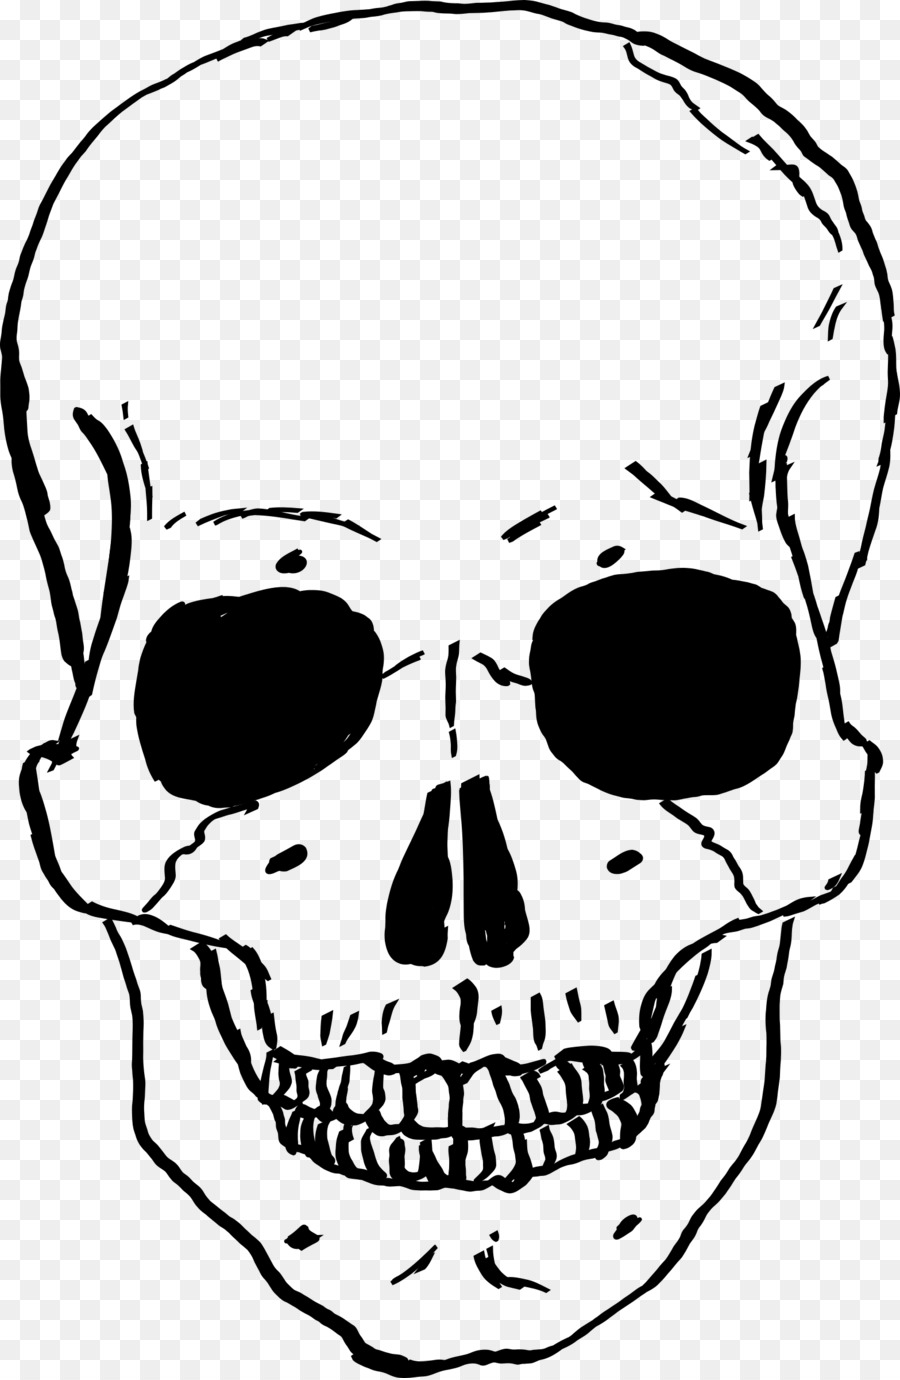 Skeleton face clipart clipart library Human Skull Drawing clipart - Skull, Drawing, Face ... clipart library